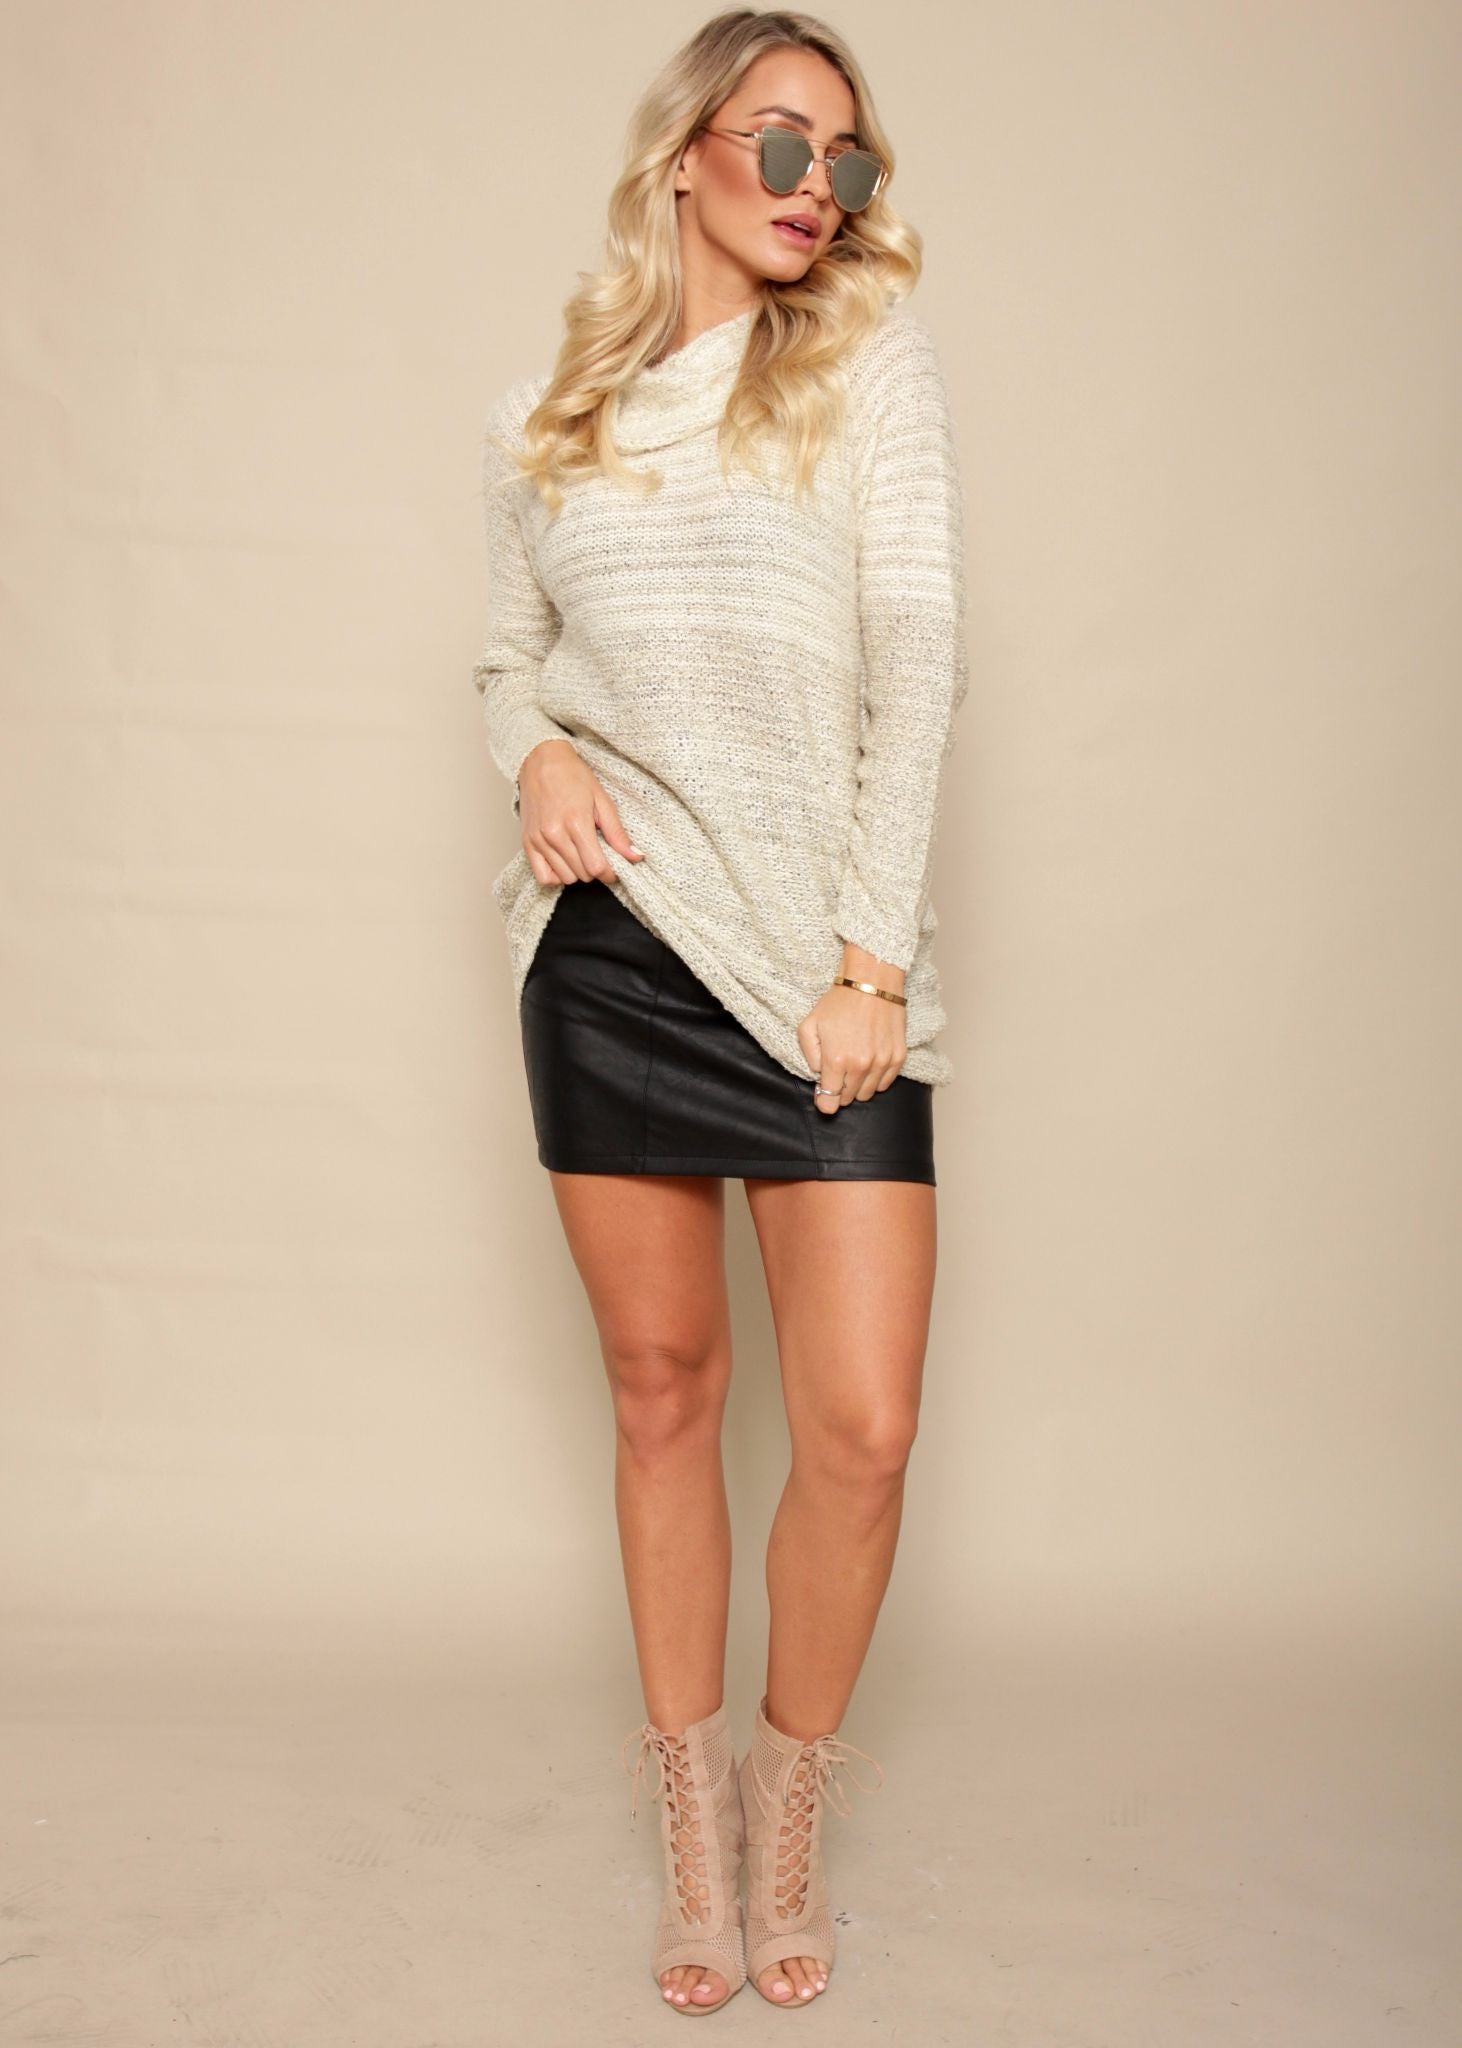 Roll With It Sweater Dress - Cream Fleck